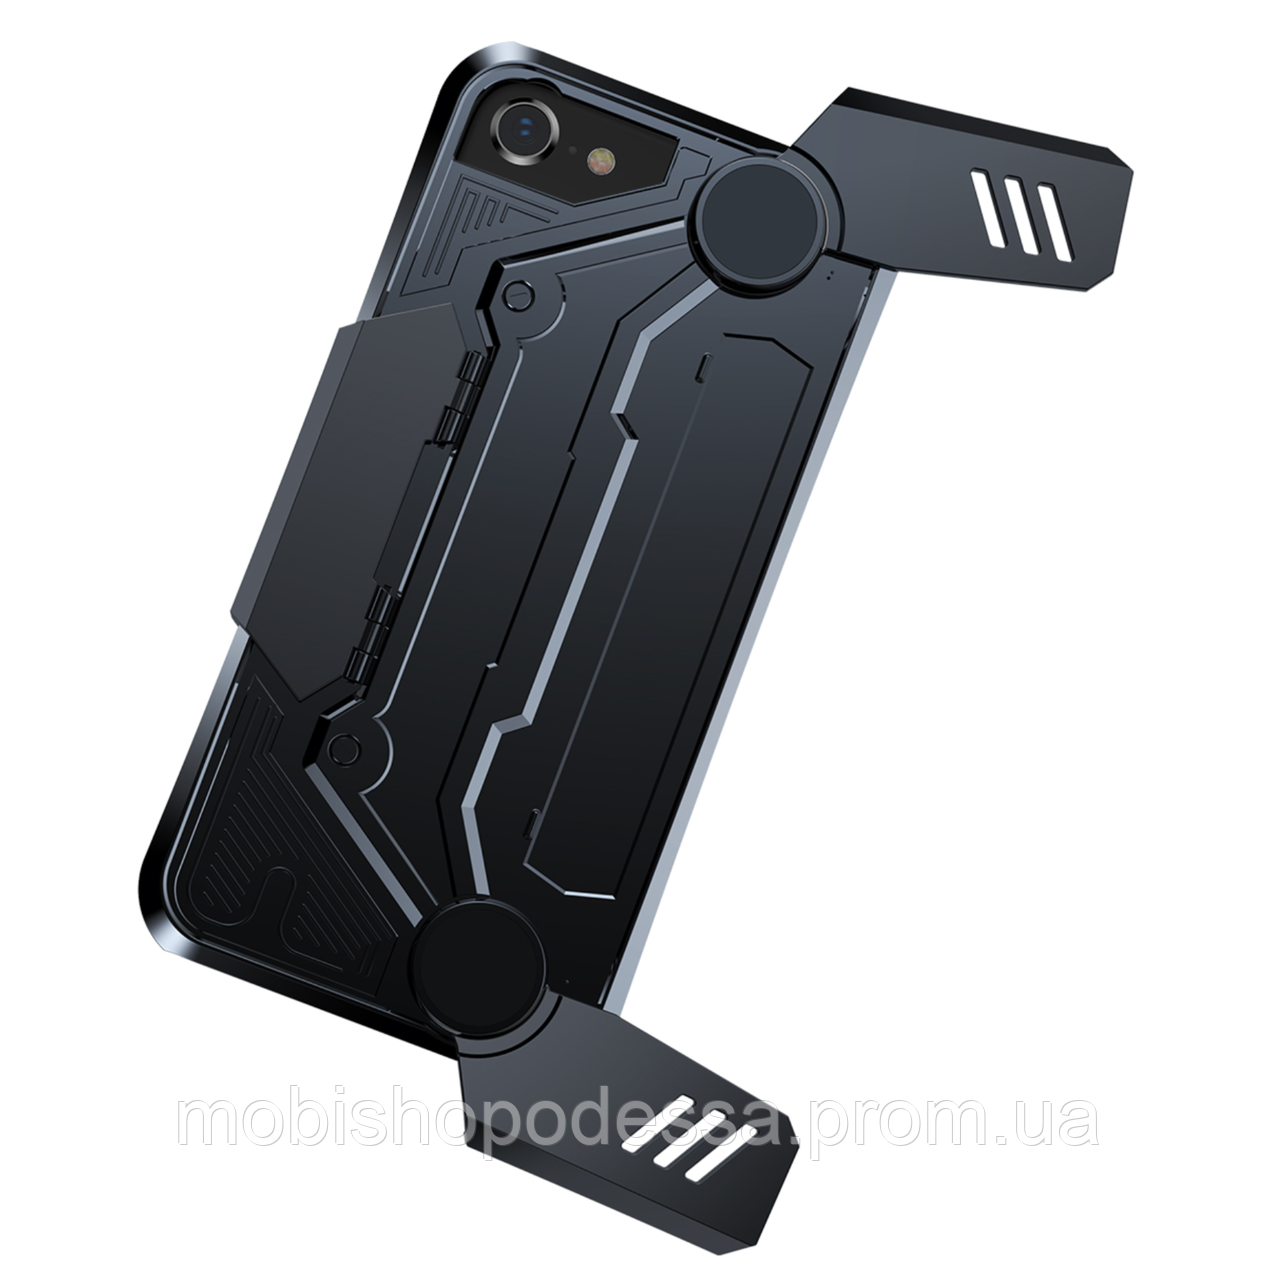 Baseus Gamer Gamepad Case with bracket?For iPhone 7/8 Plus